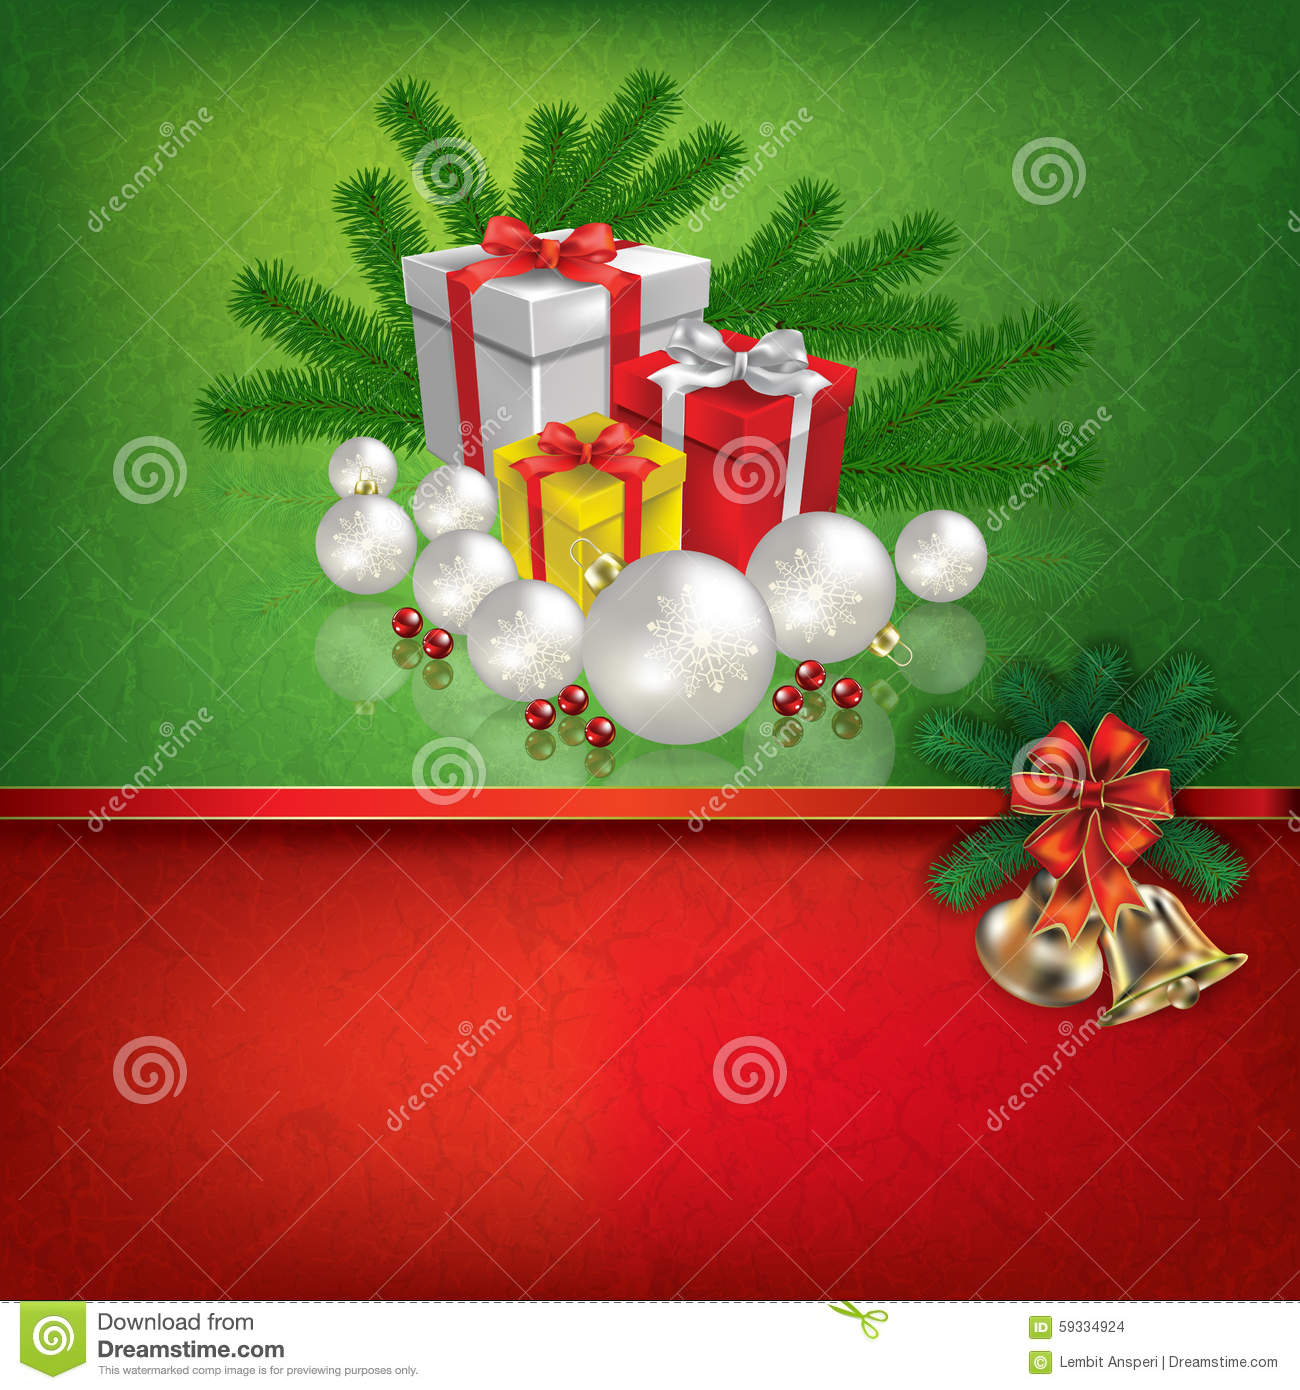 Green red greeting with christmas decorations stock vector